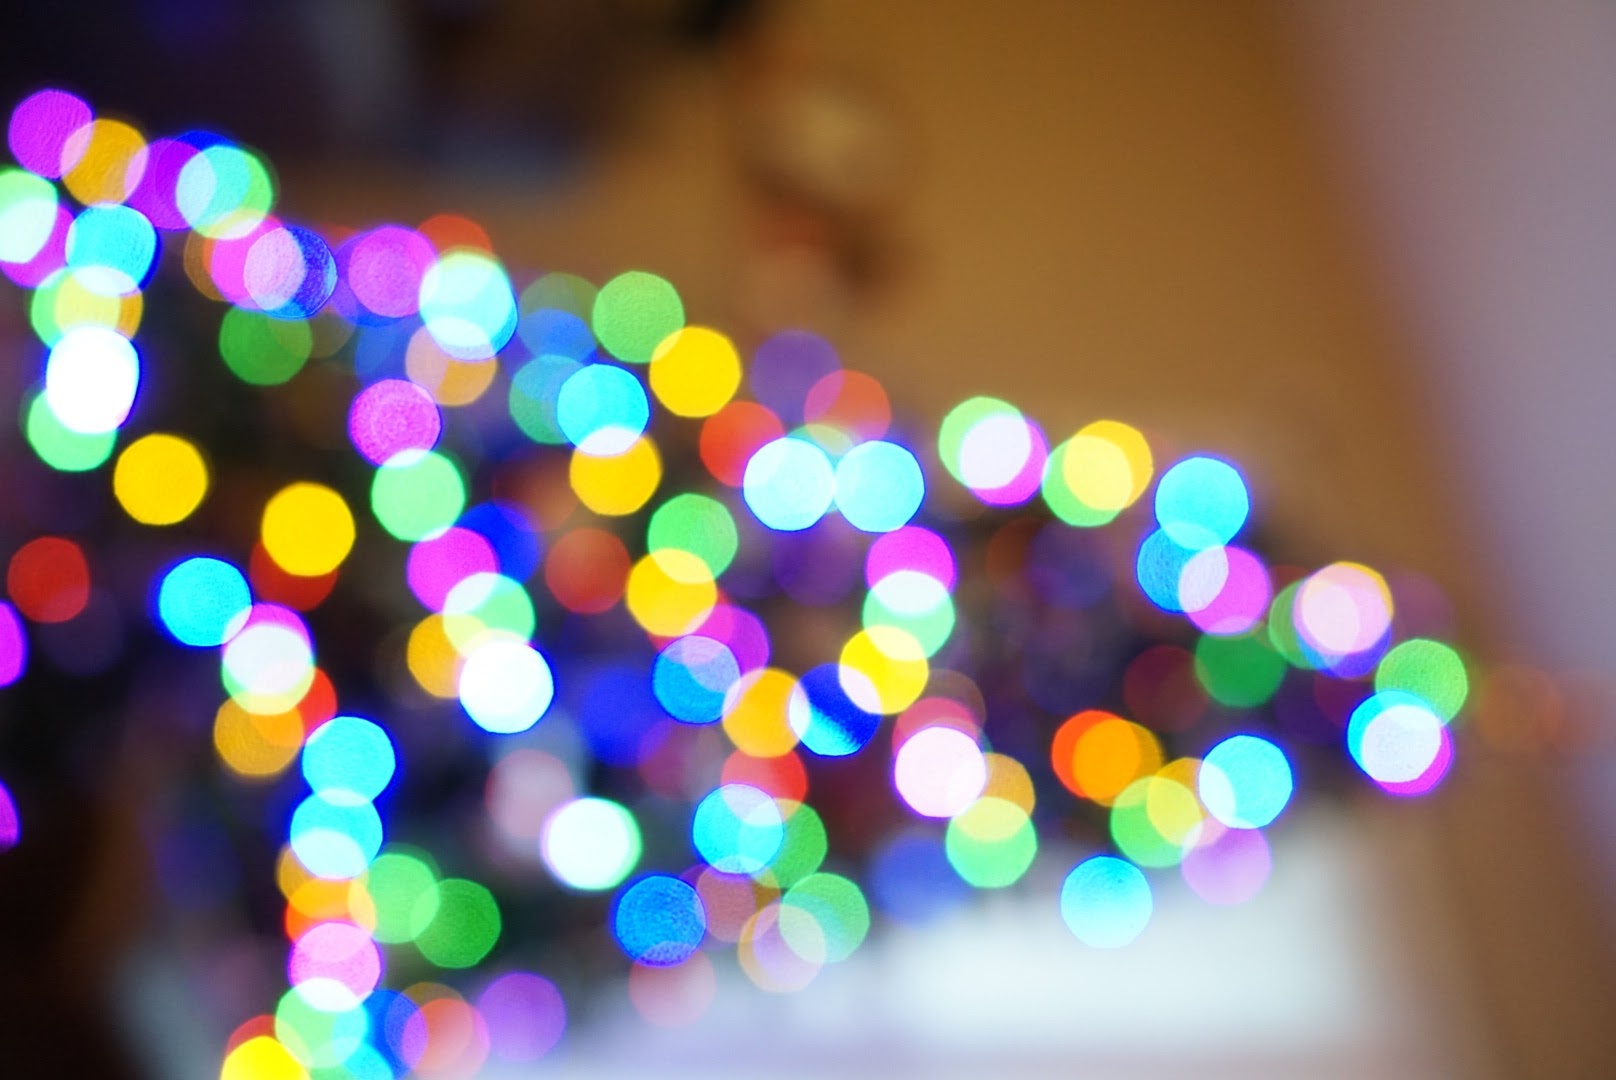 Multicolored Bokeh, Multicolored, Spots, Light, Effect, HQ Photo